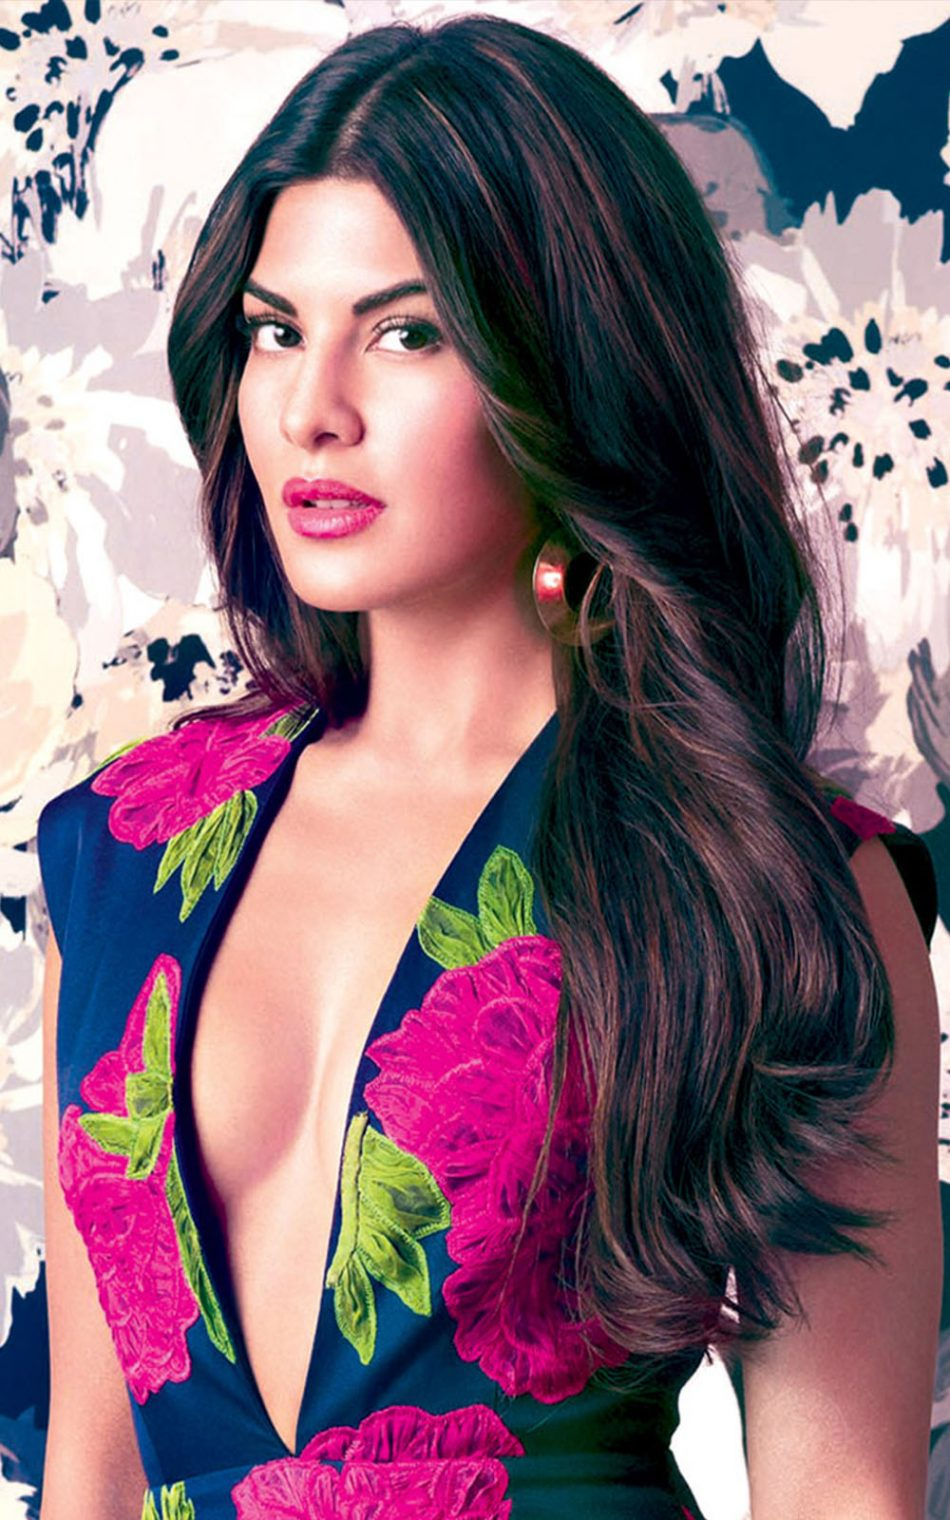 Download Jacqueline Fernandez 2018 Free Pure 4k Ultra Hd Mobile